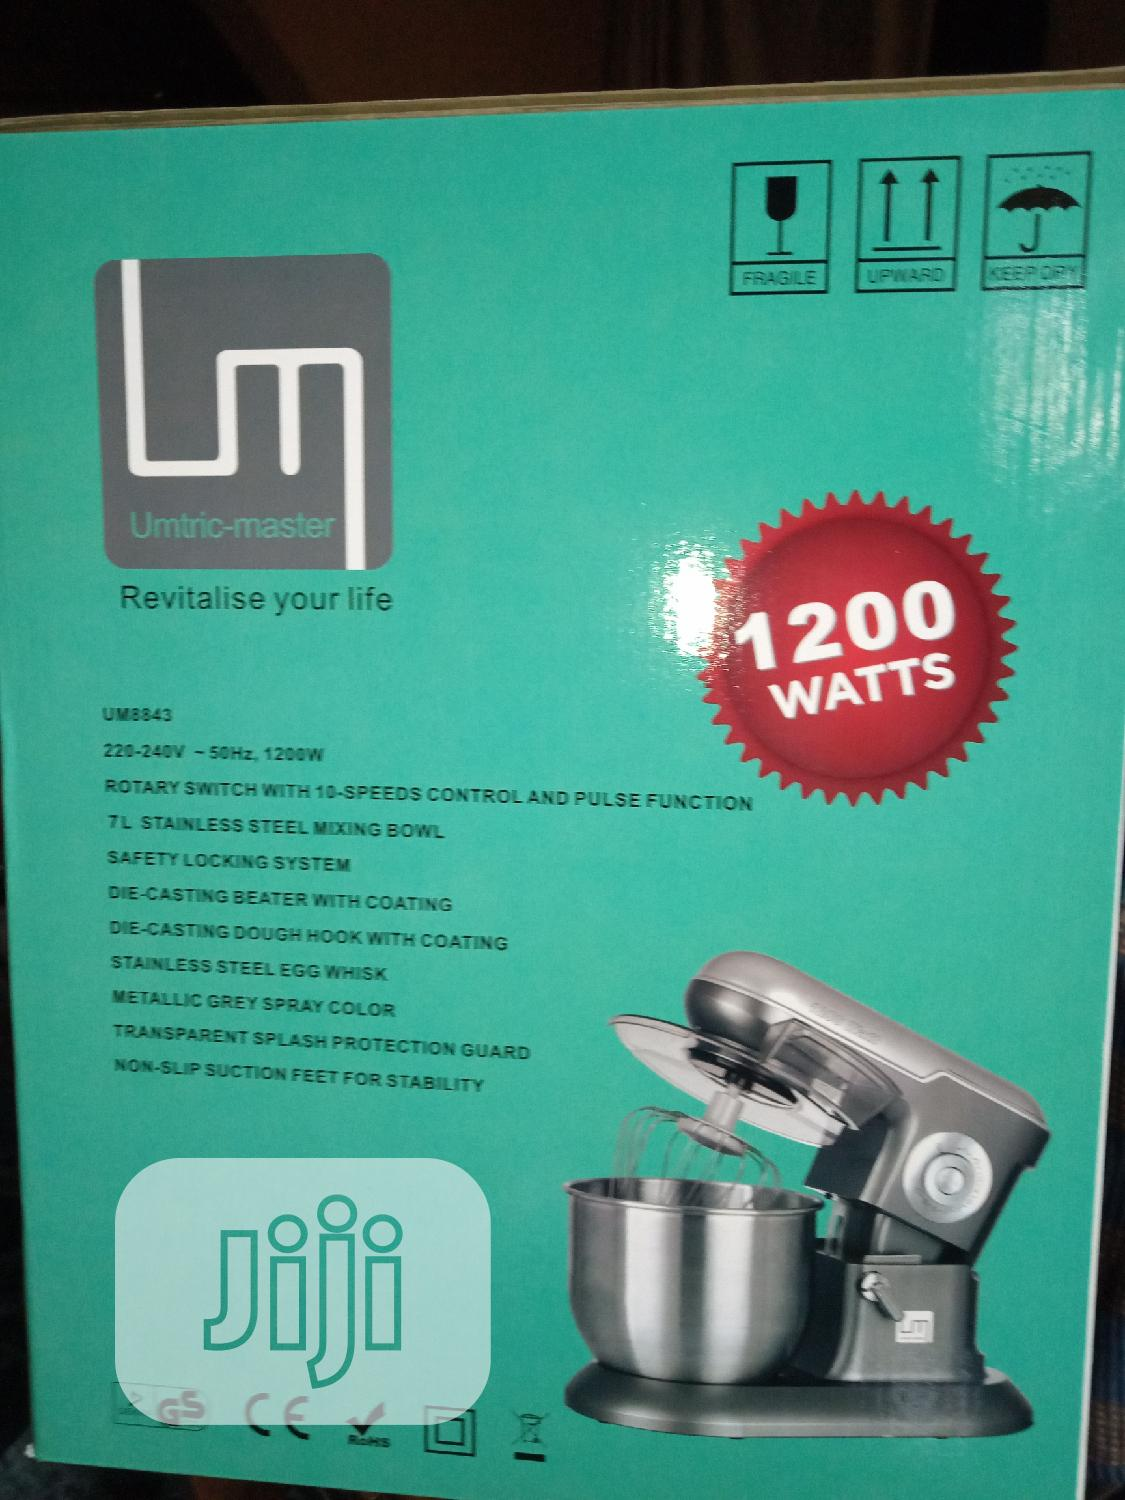 Umtric Master 7litres Stand Mixer,1200watts,10speed, Pulse. | Kitchen Appliances for sale in Ojo, Lagos State, Nigeria